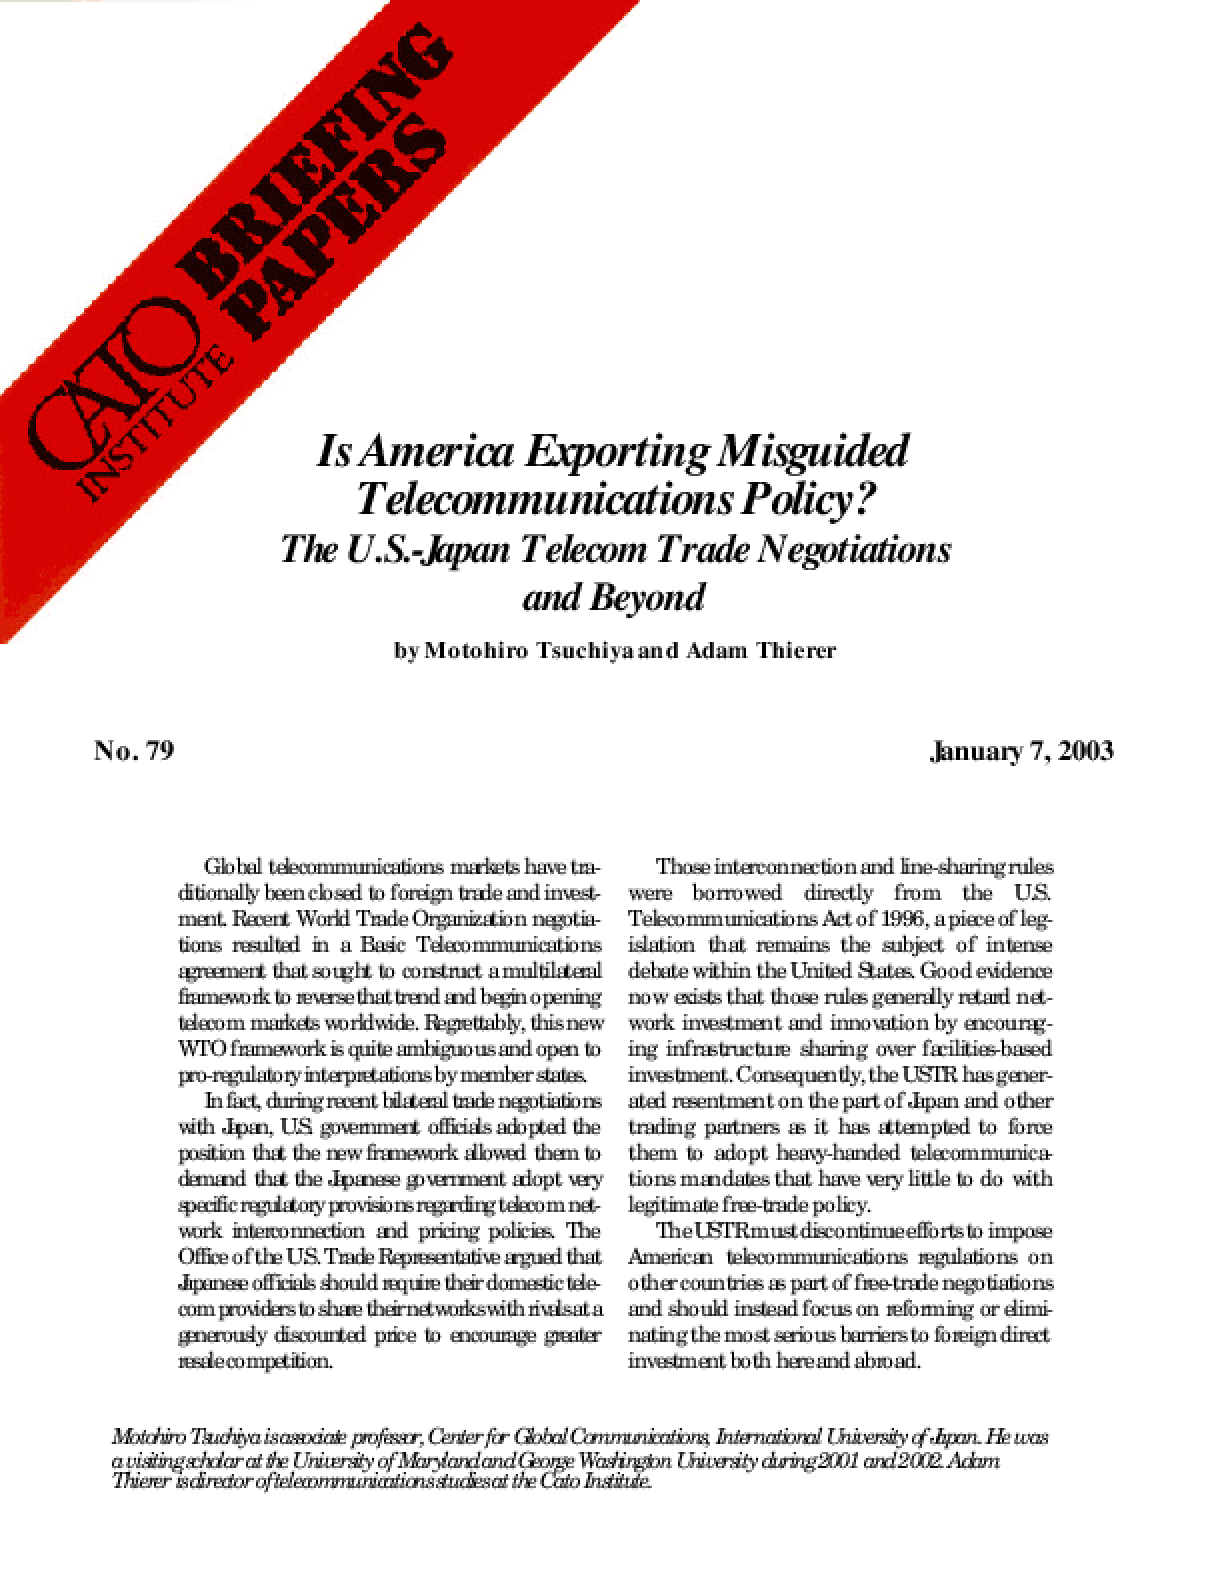 Is America Exporting Misguided Telecommunications Policy? The U.S.-Japan Telecom Trade Negotiations and Beyond